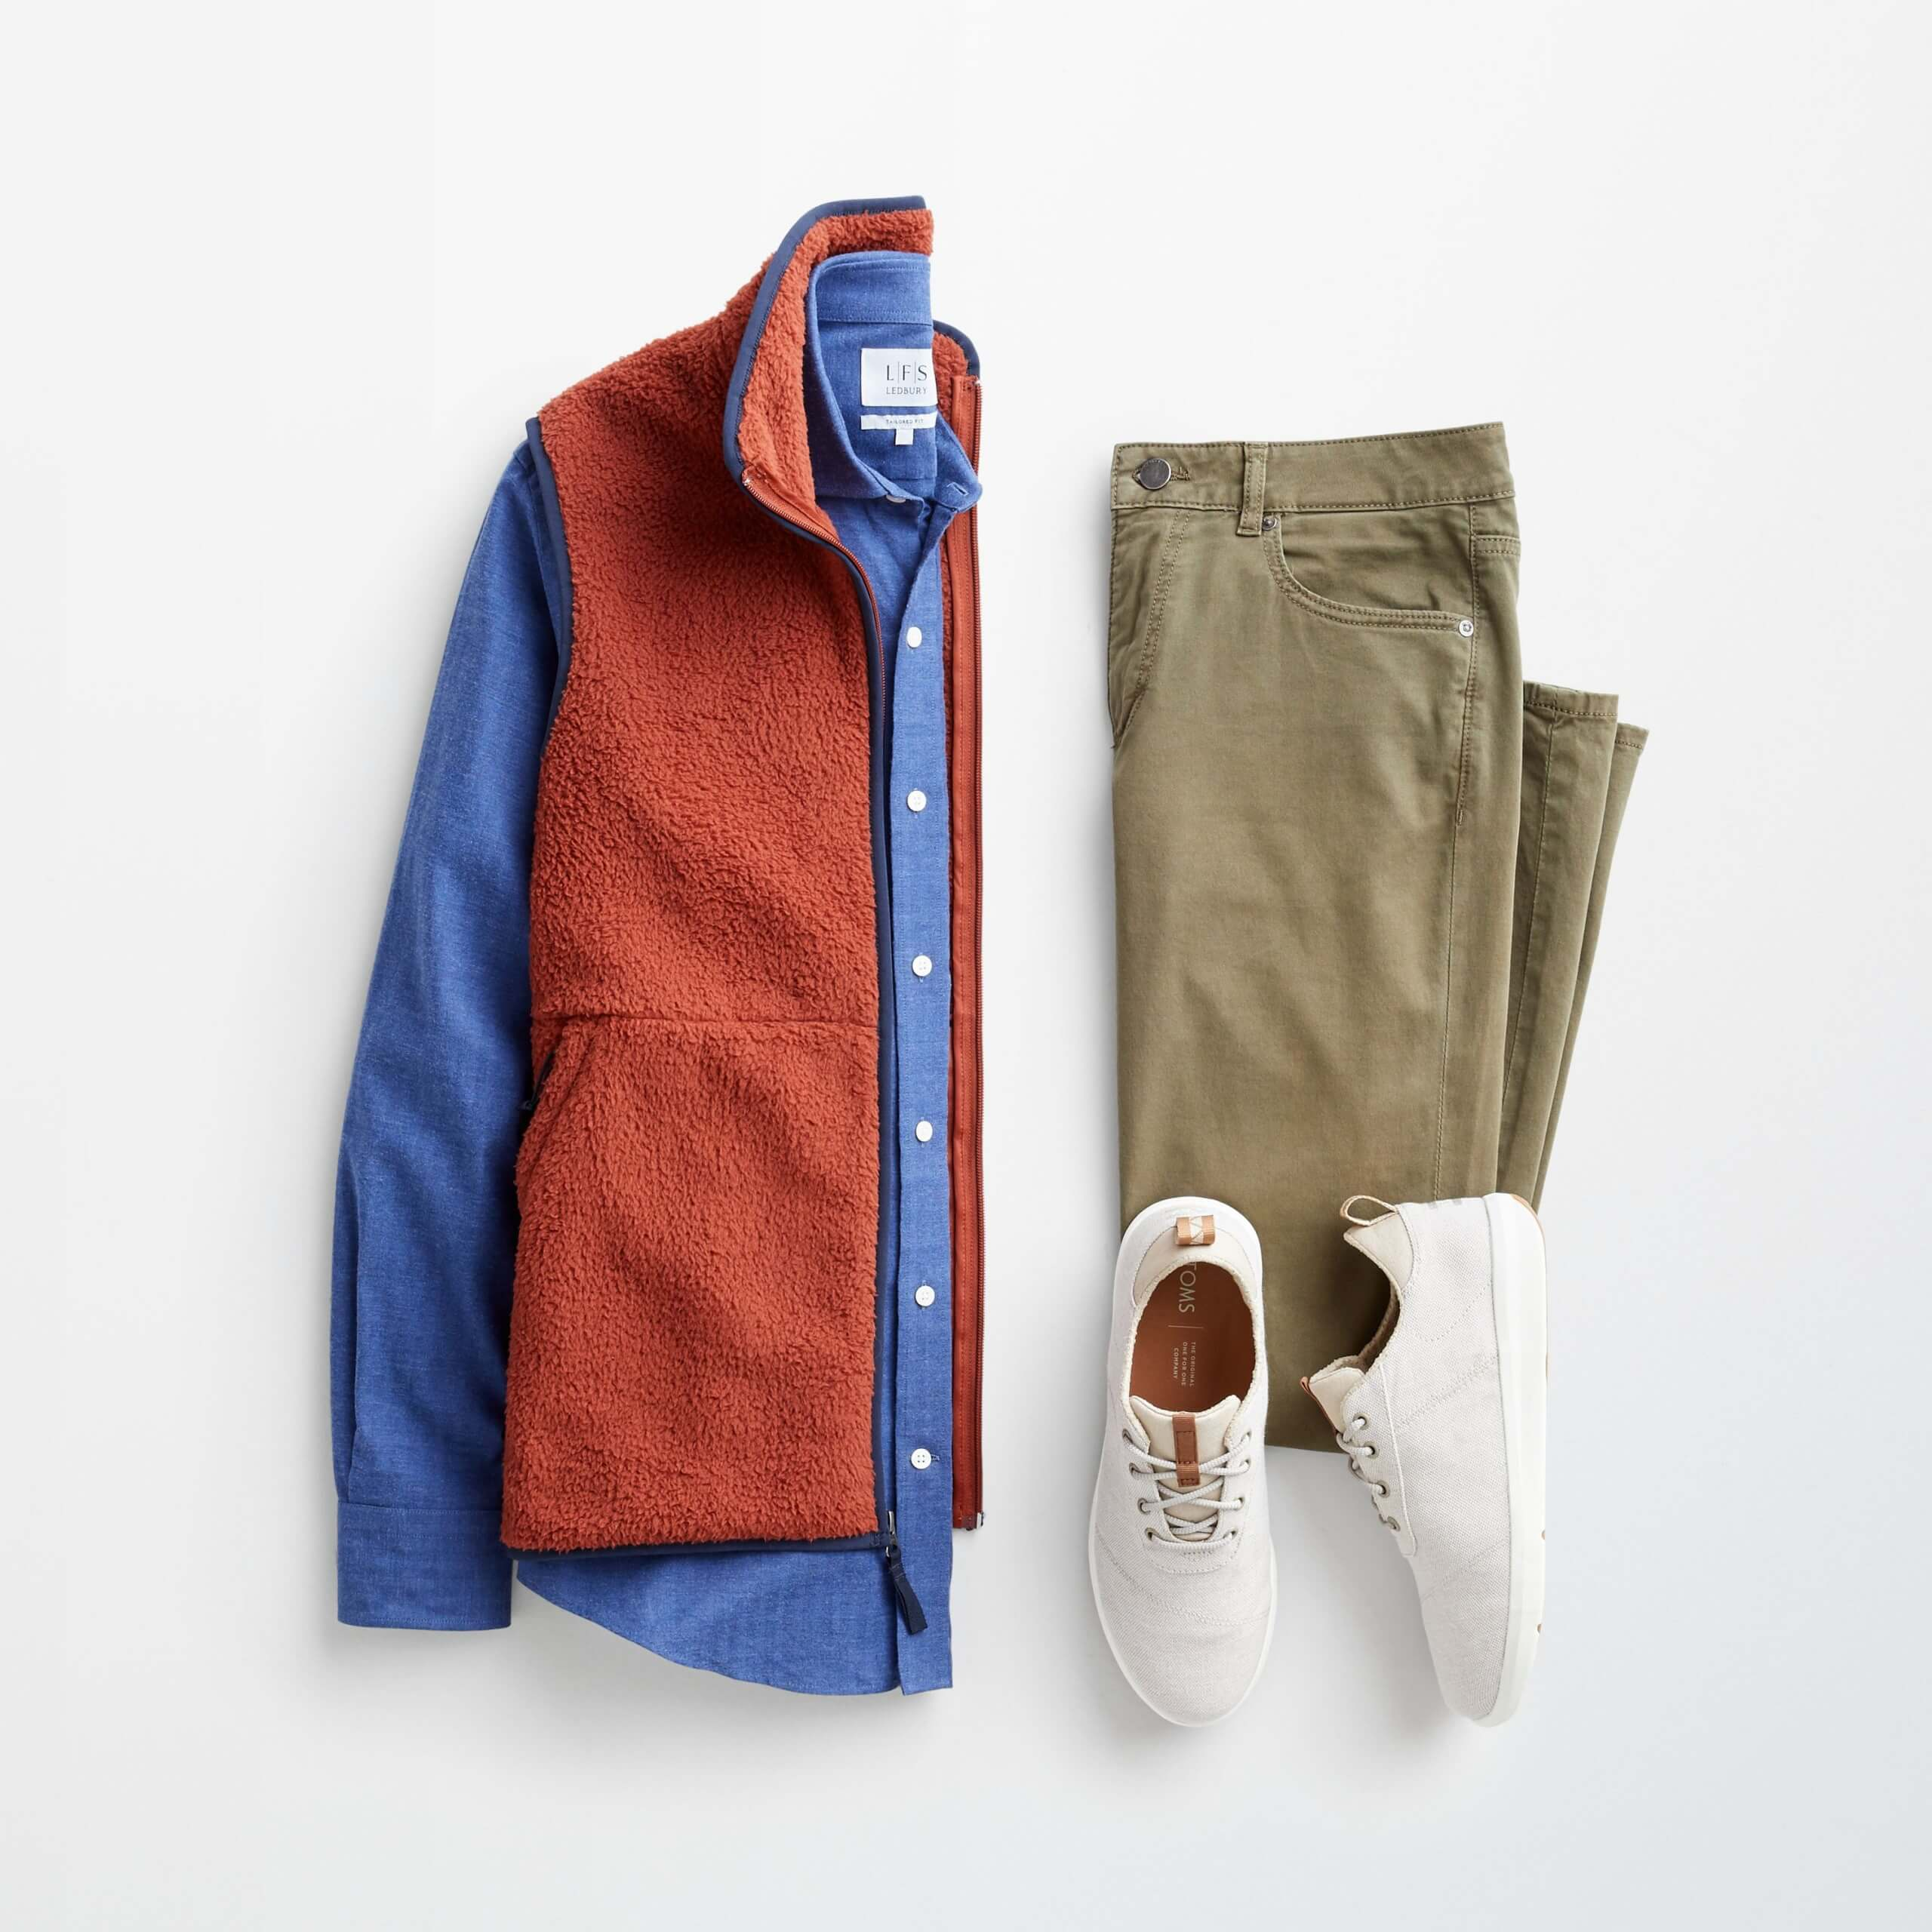 Stitch Fix Men's outfit laydown featuring an orange vest over a blue long sleeve button-down shirt, olive green jeans and cream lace-up sneakers.